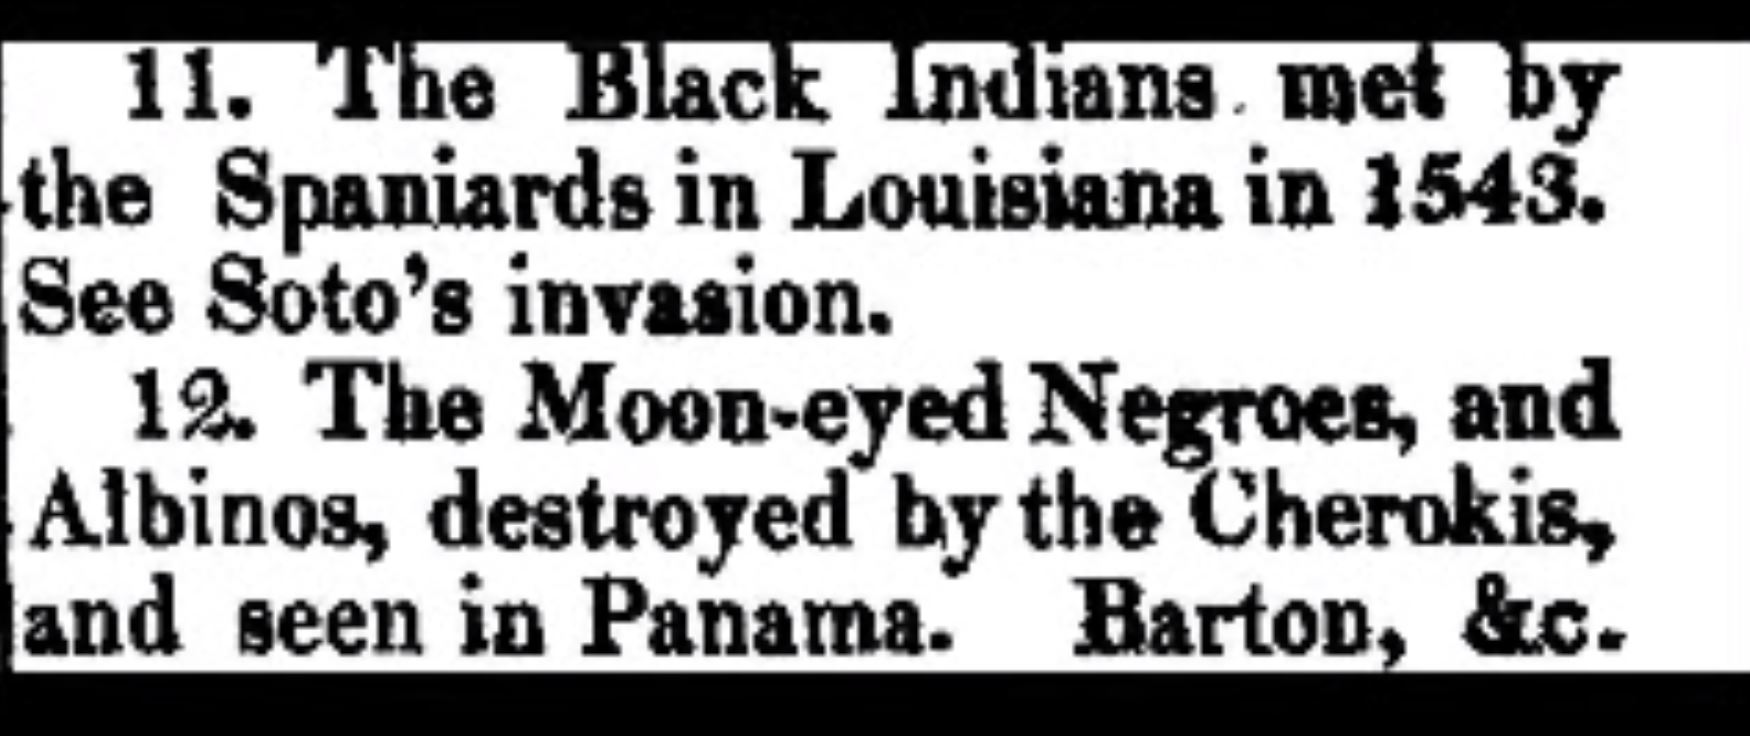 The Black Indians met by the Spaniards in Louisiana in 1543